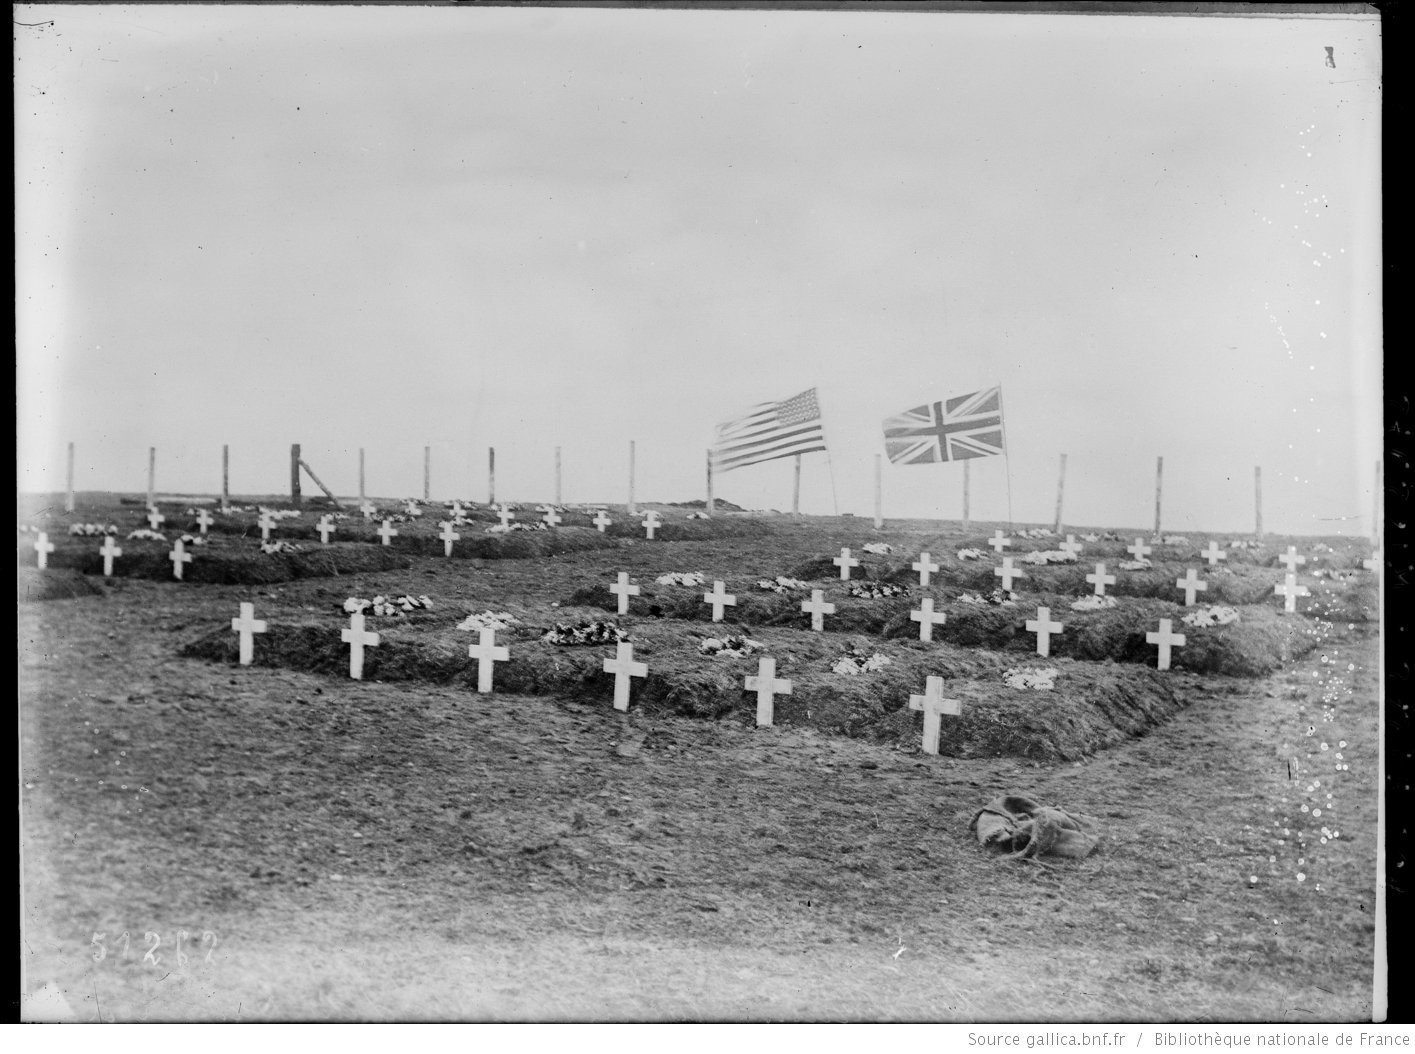 Graves of U.S. soldiers behind the lines, Agence Rol. Agence photographique 1918, French National Library - Bibliothèque Nationale de France, Public Domain Mark